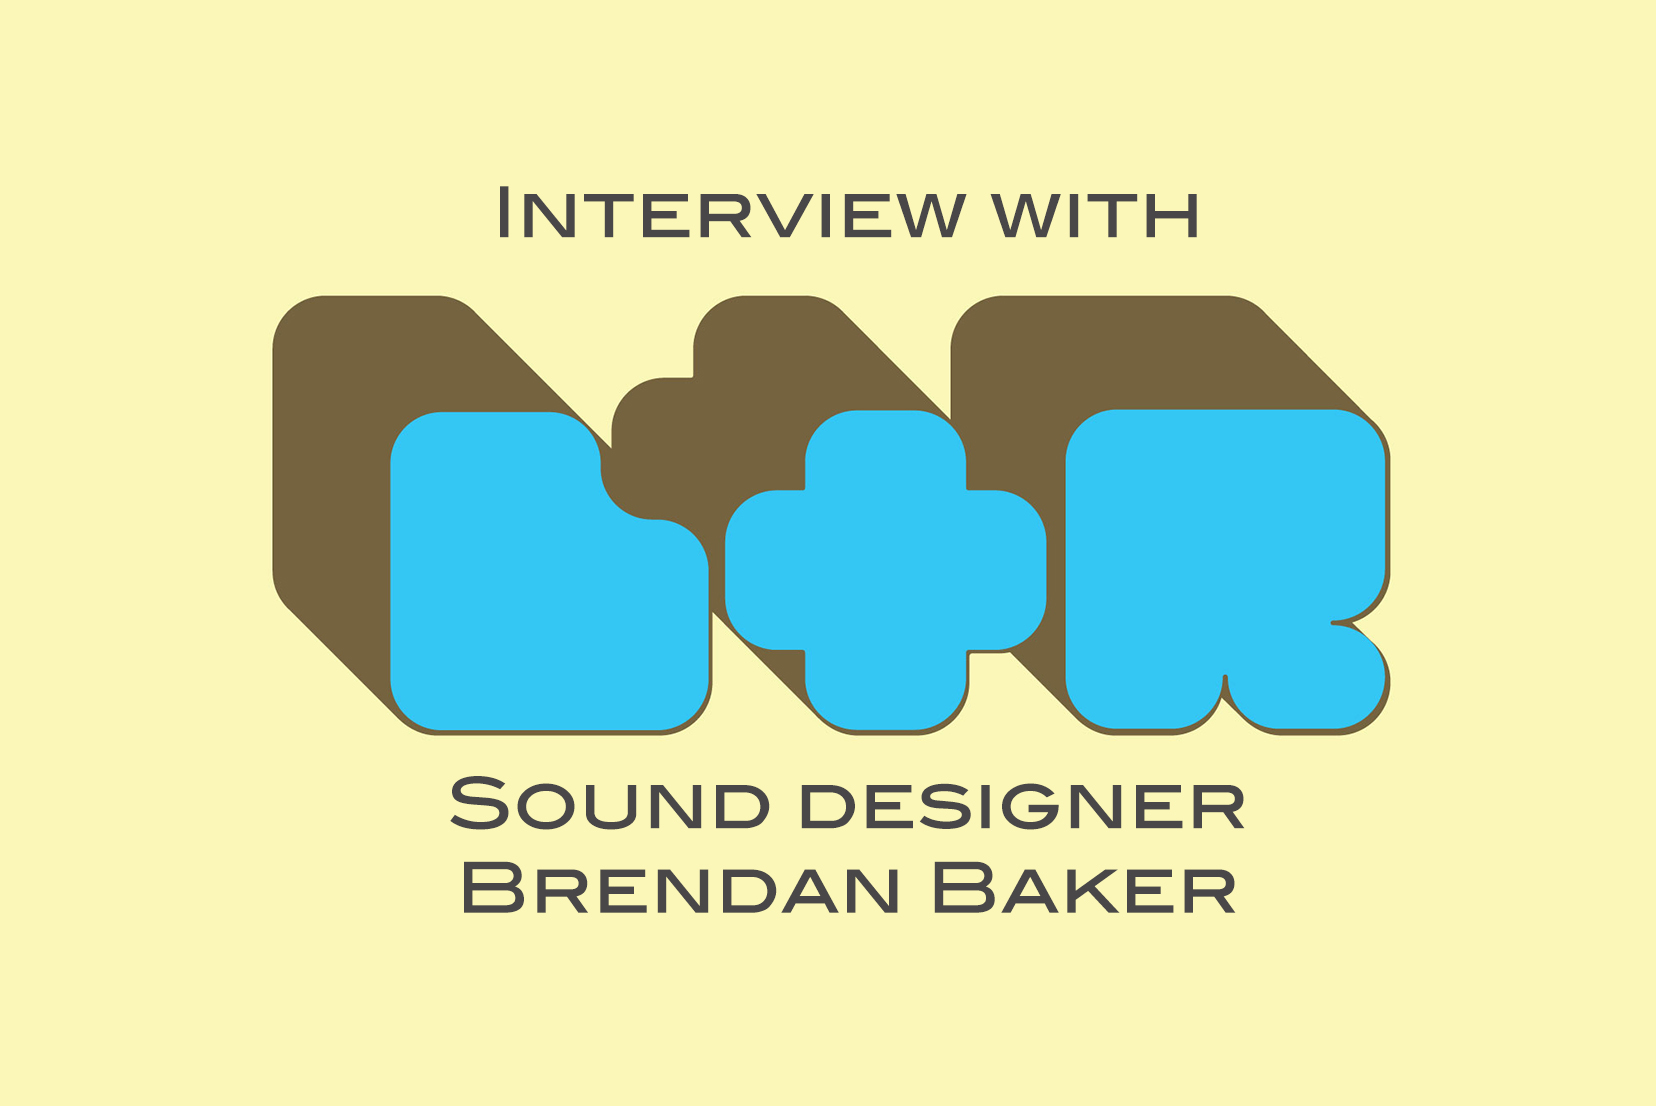 Interview with Brendan Baker, sound designer of the podcat 'Love and Radio'